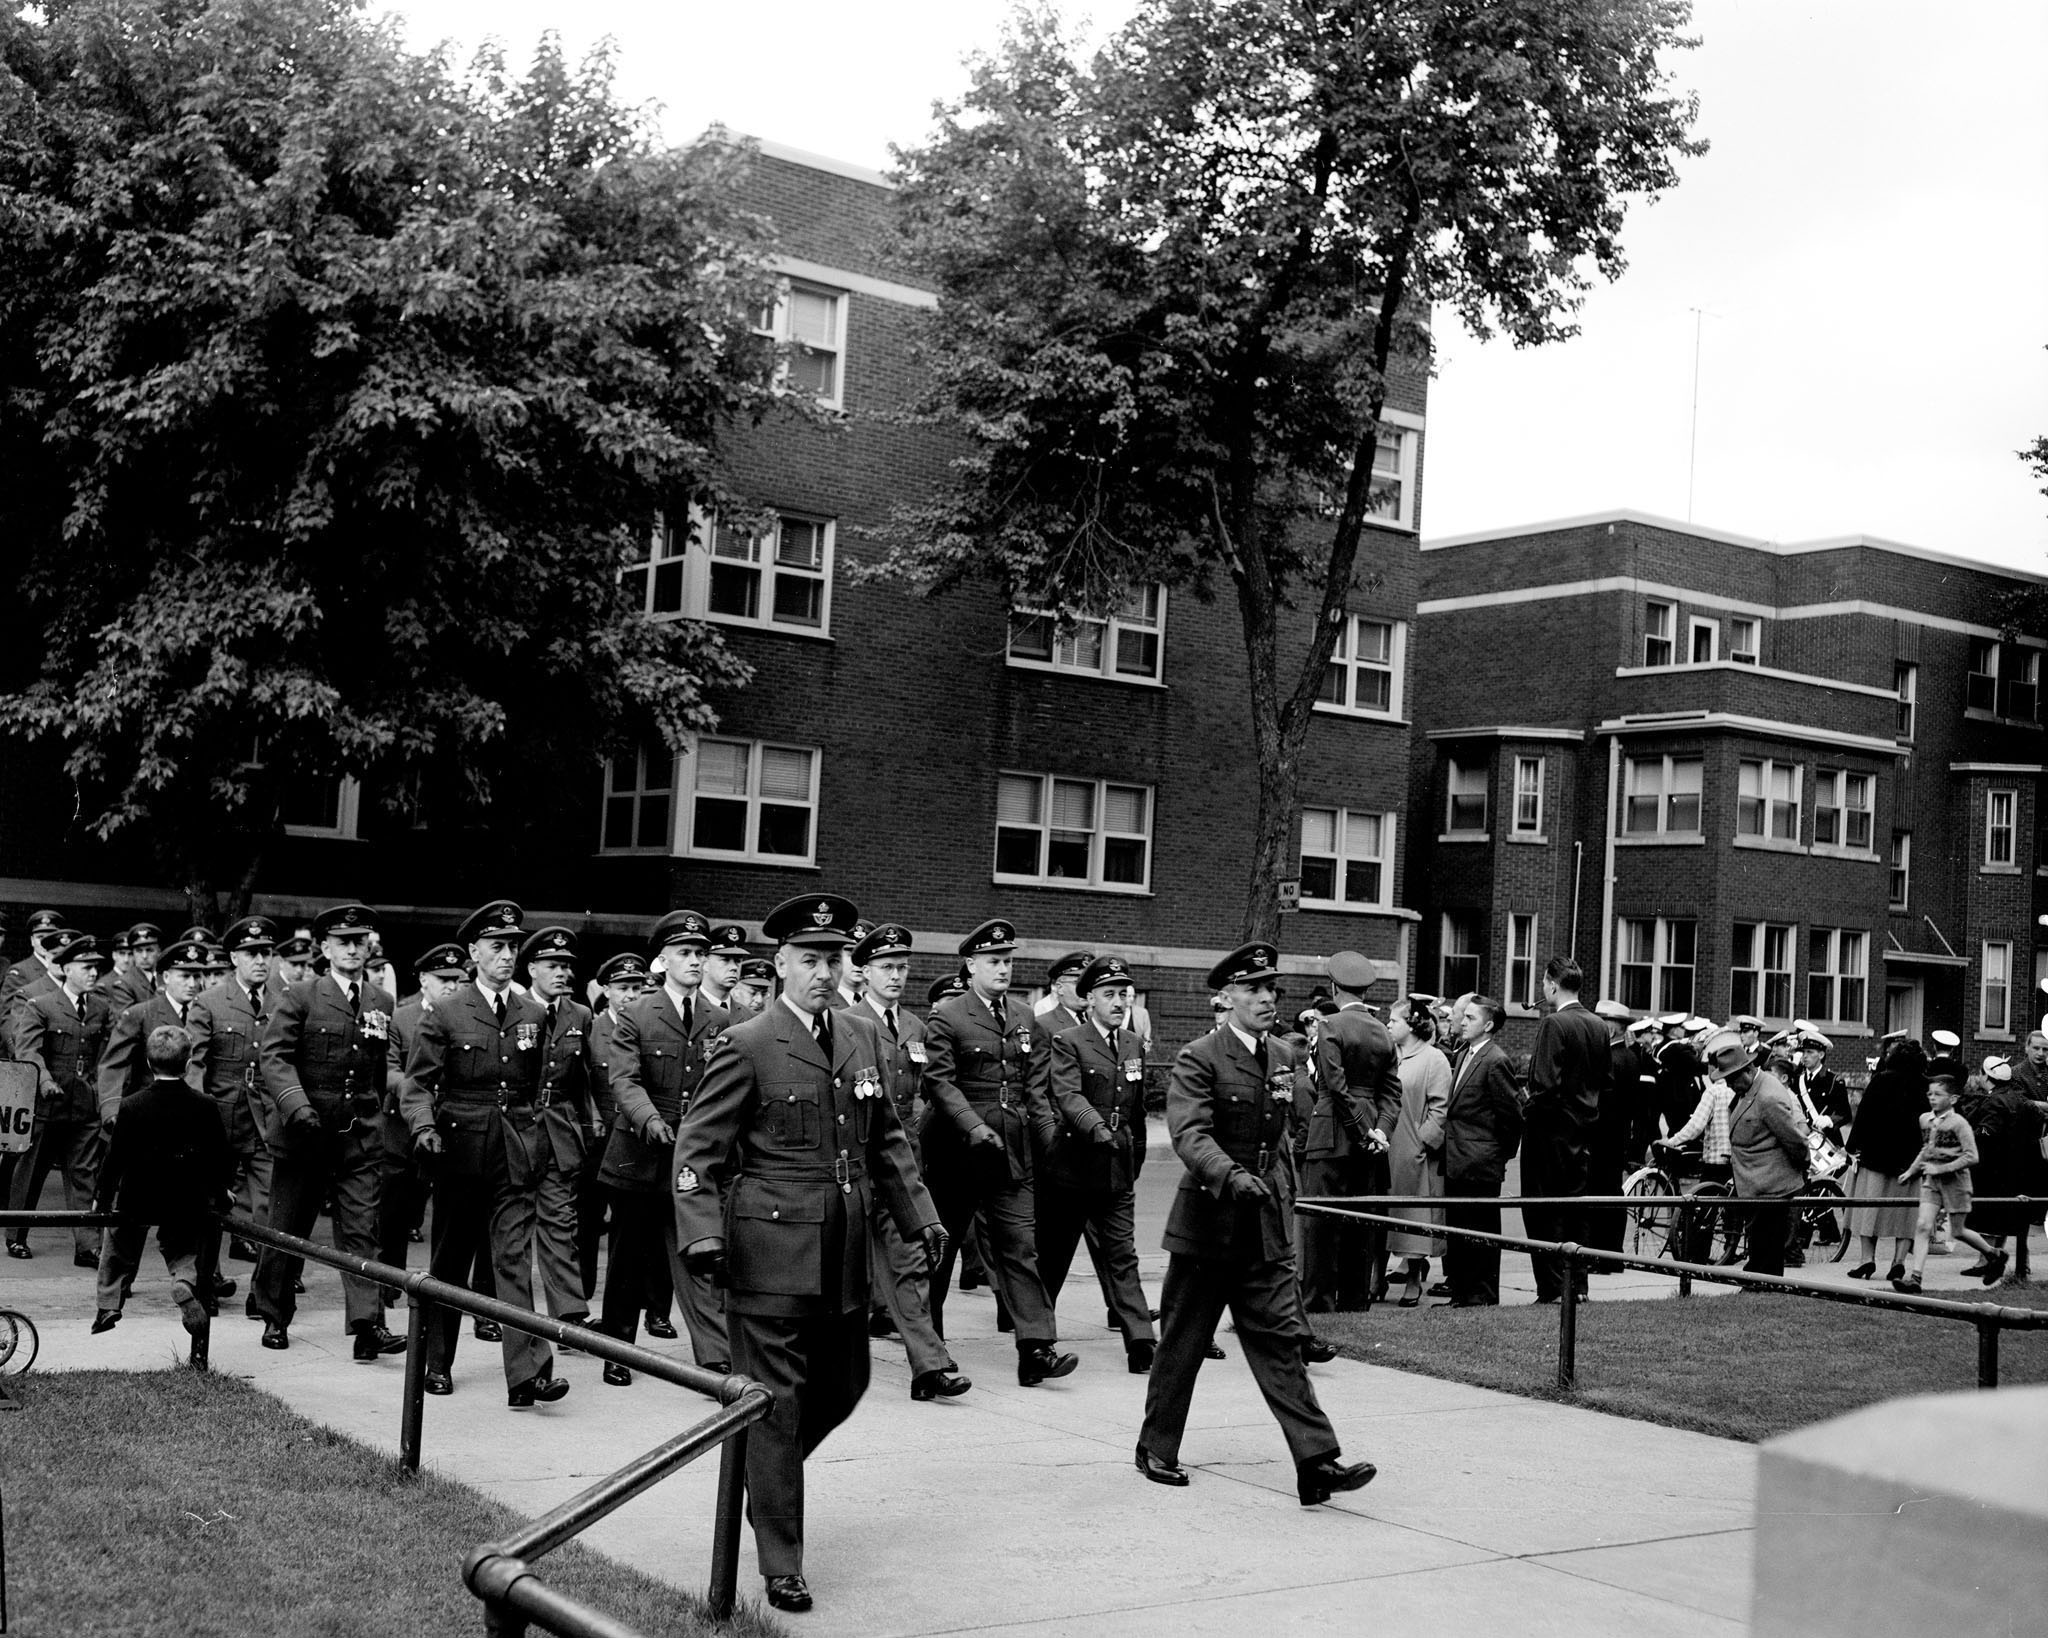 During the Battle of Britain parade held in Ottawa on September 16, 1956, the Roman Catholic section of the parade marches into their church. Church services continue to be part of Battle of Britain ceremonies in many locations. PHOTO: PL-105194, DND Archives